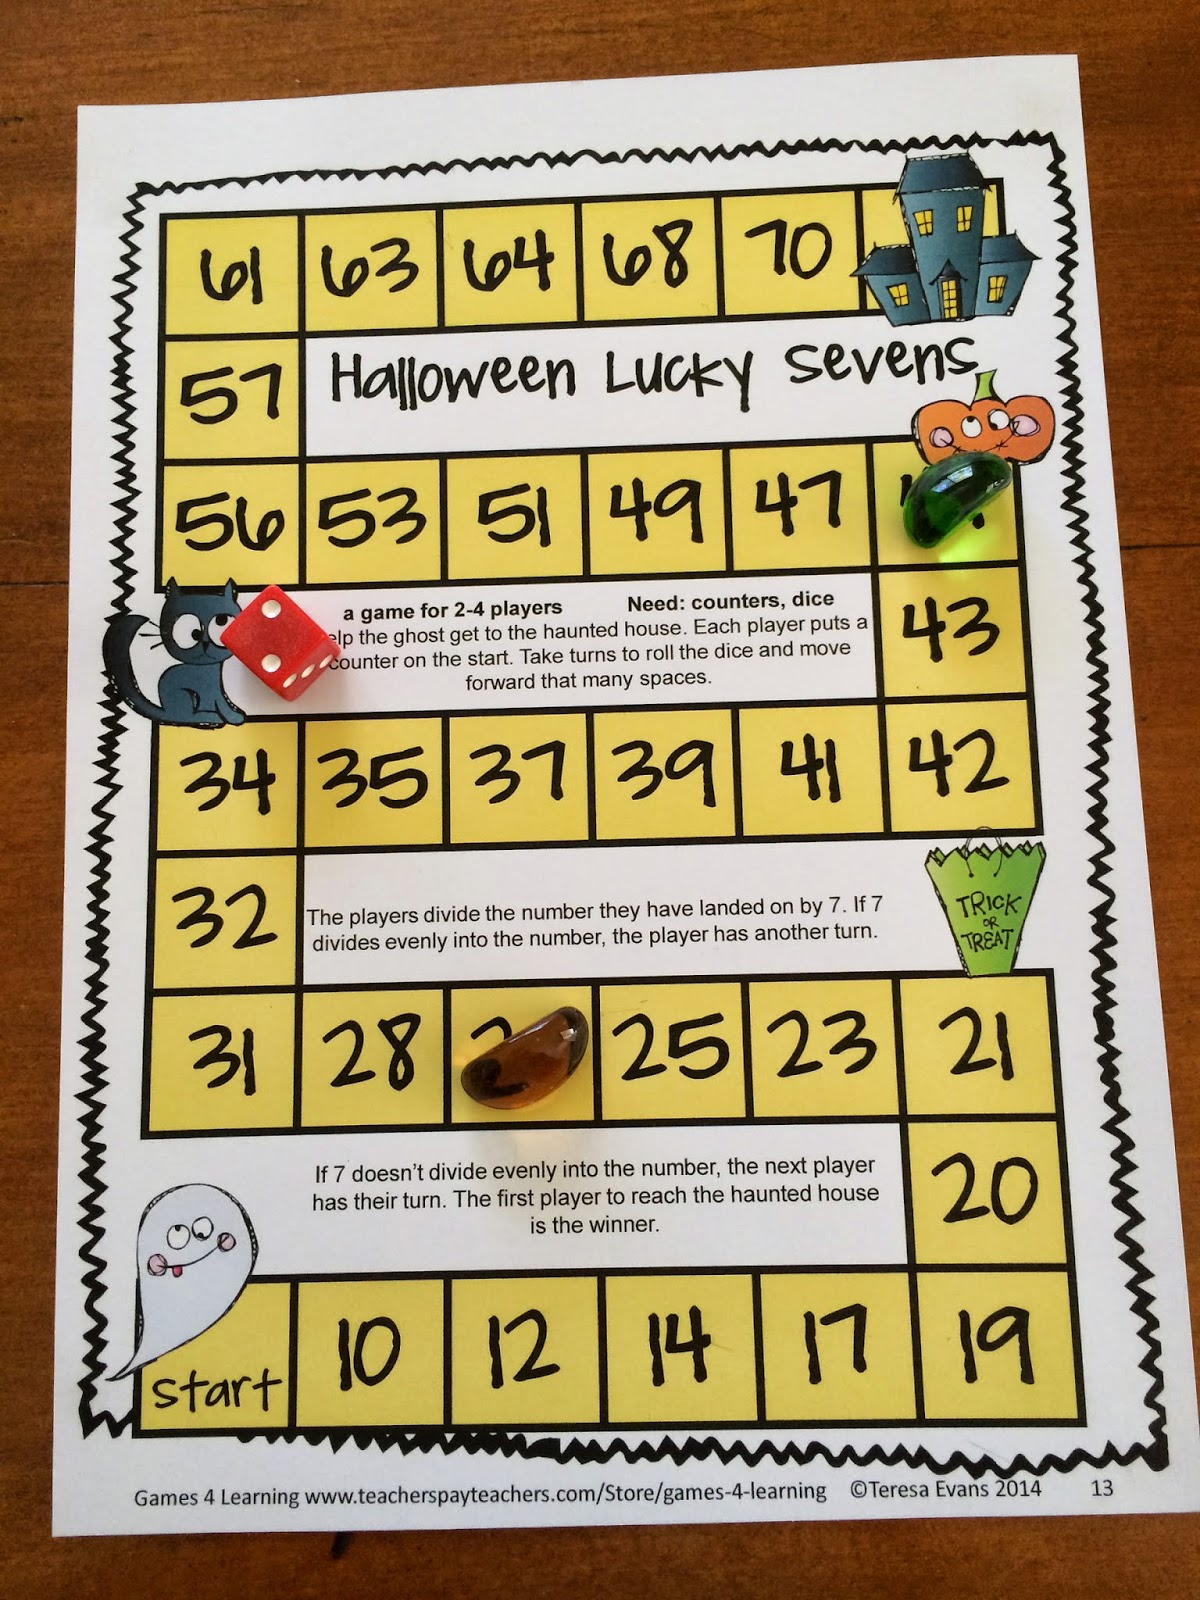 Fun Games 4 Learning: October 2014